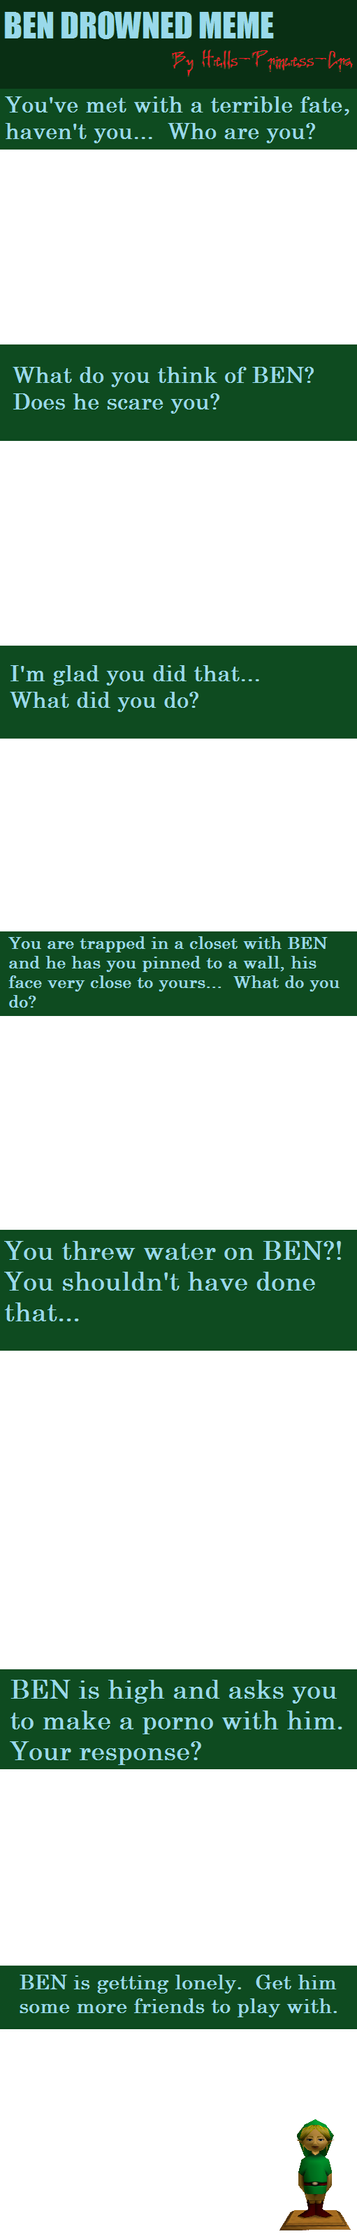 BEN DROWNED Meme by Hells-Princess-Cra